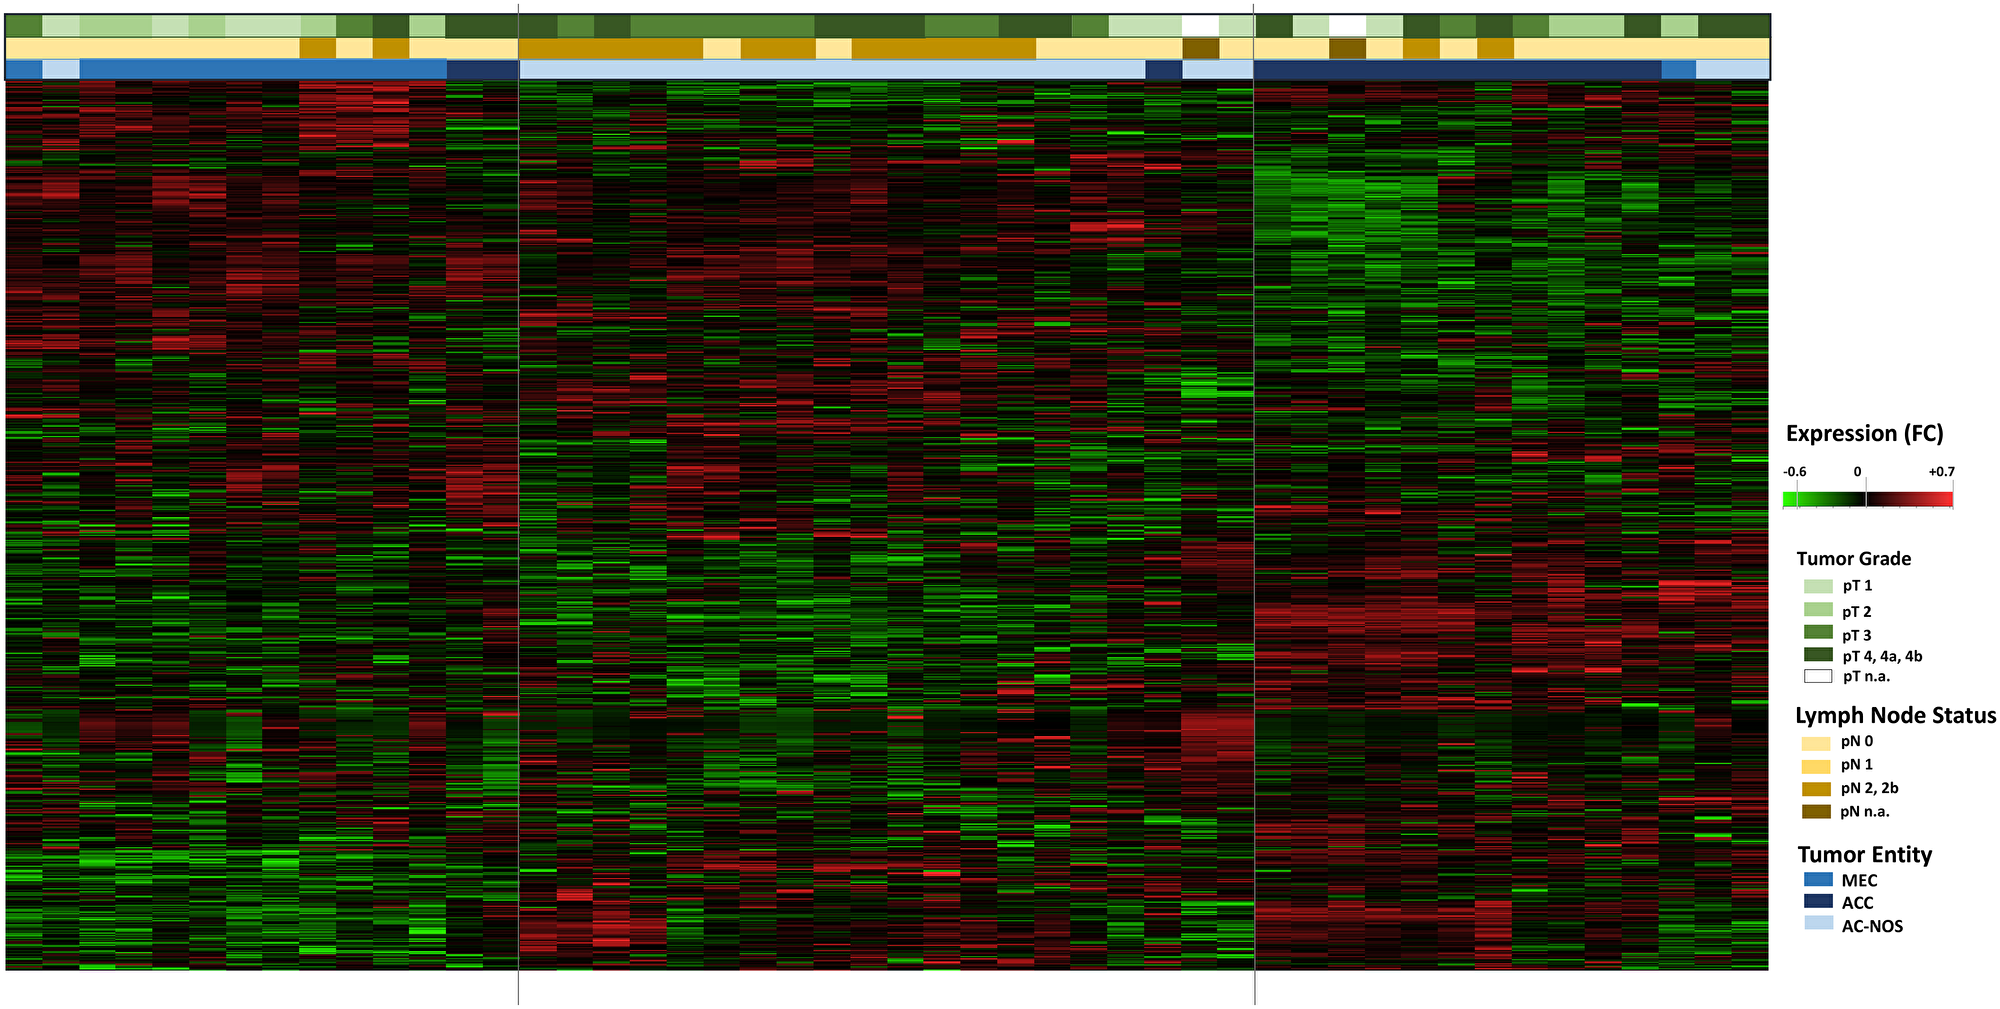 Hierarchical cluster Heatmap Analysis of tumor entities with tumor growth (pT) and lymphogenic metastasis (pN): All tumor samples of the 47 patients are shown (n = 47, x-axis).